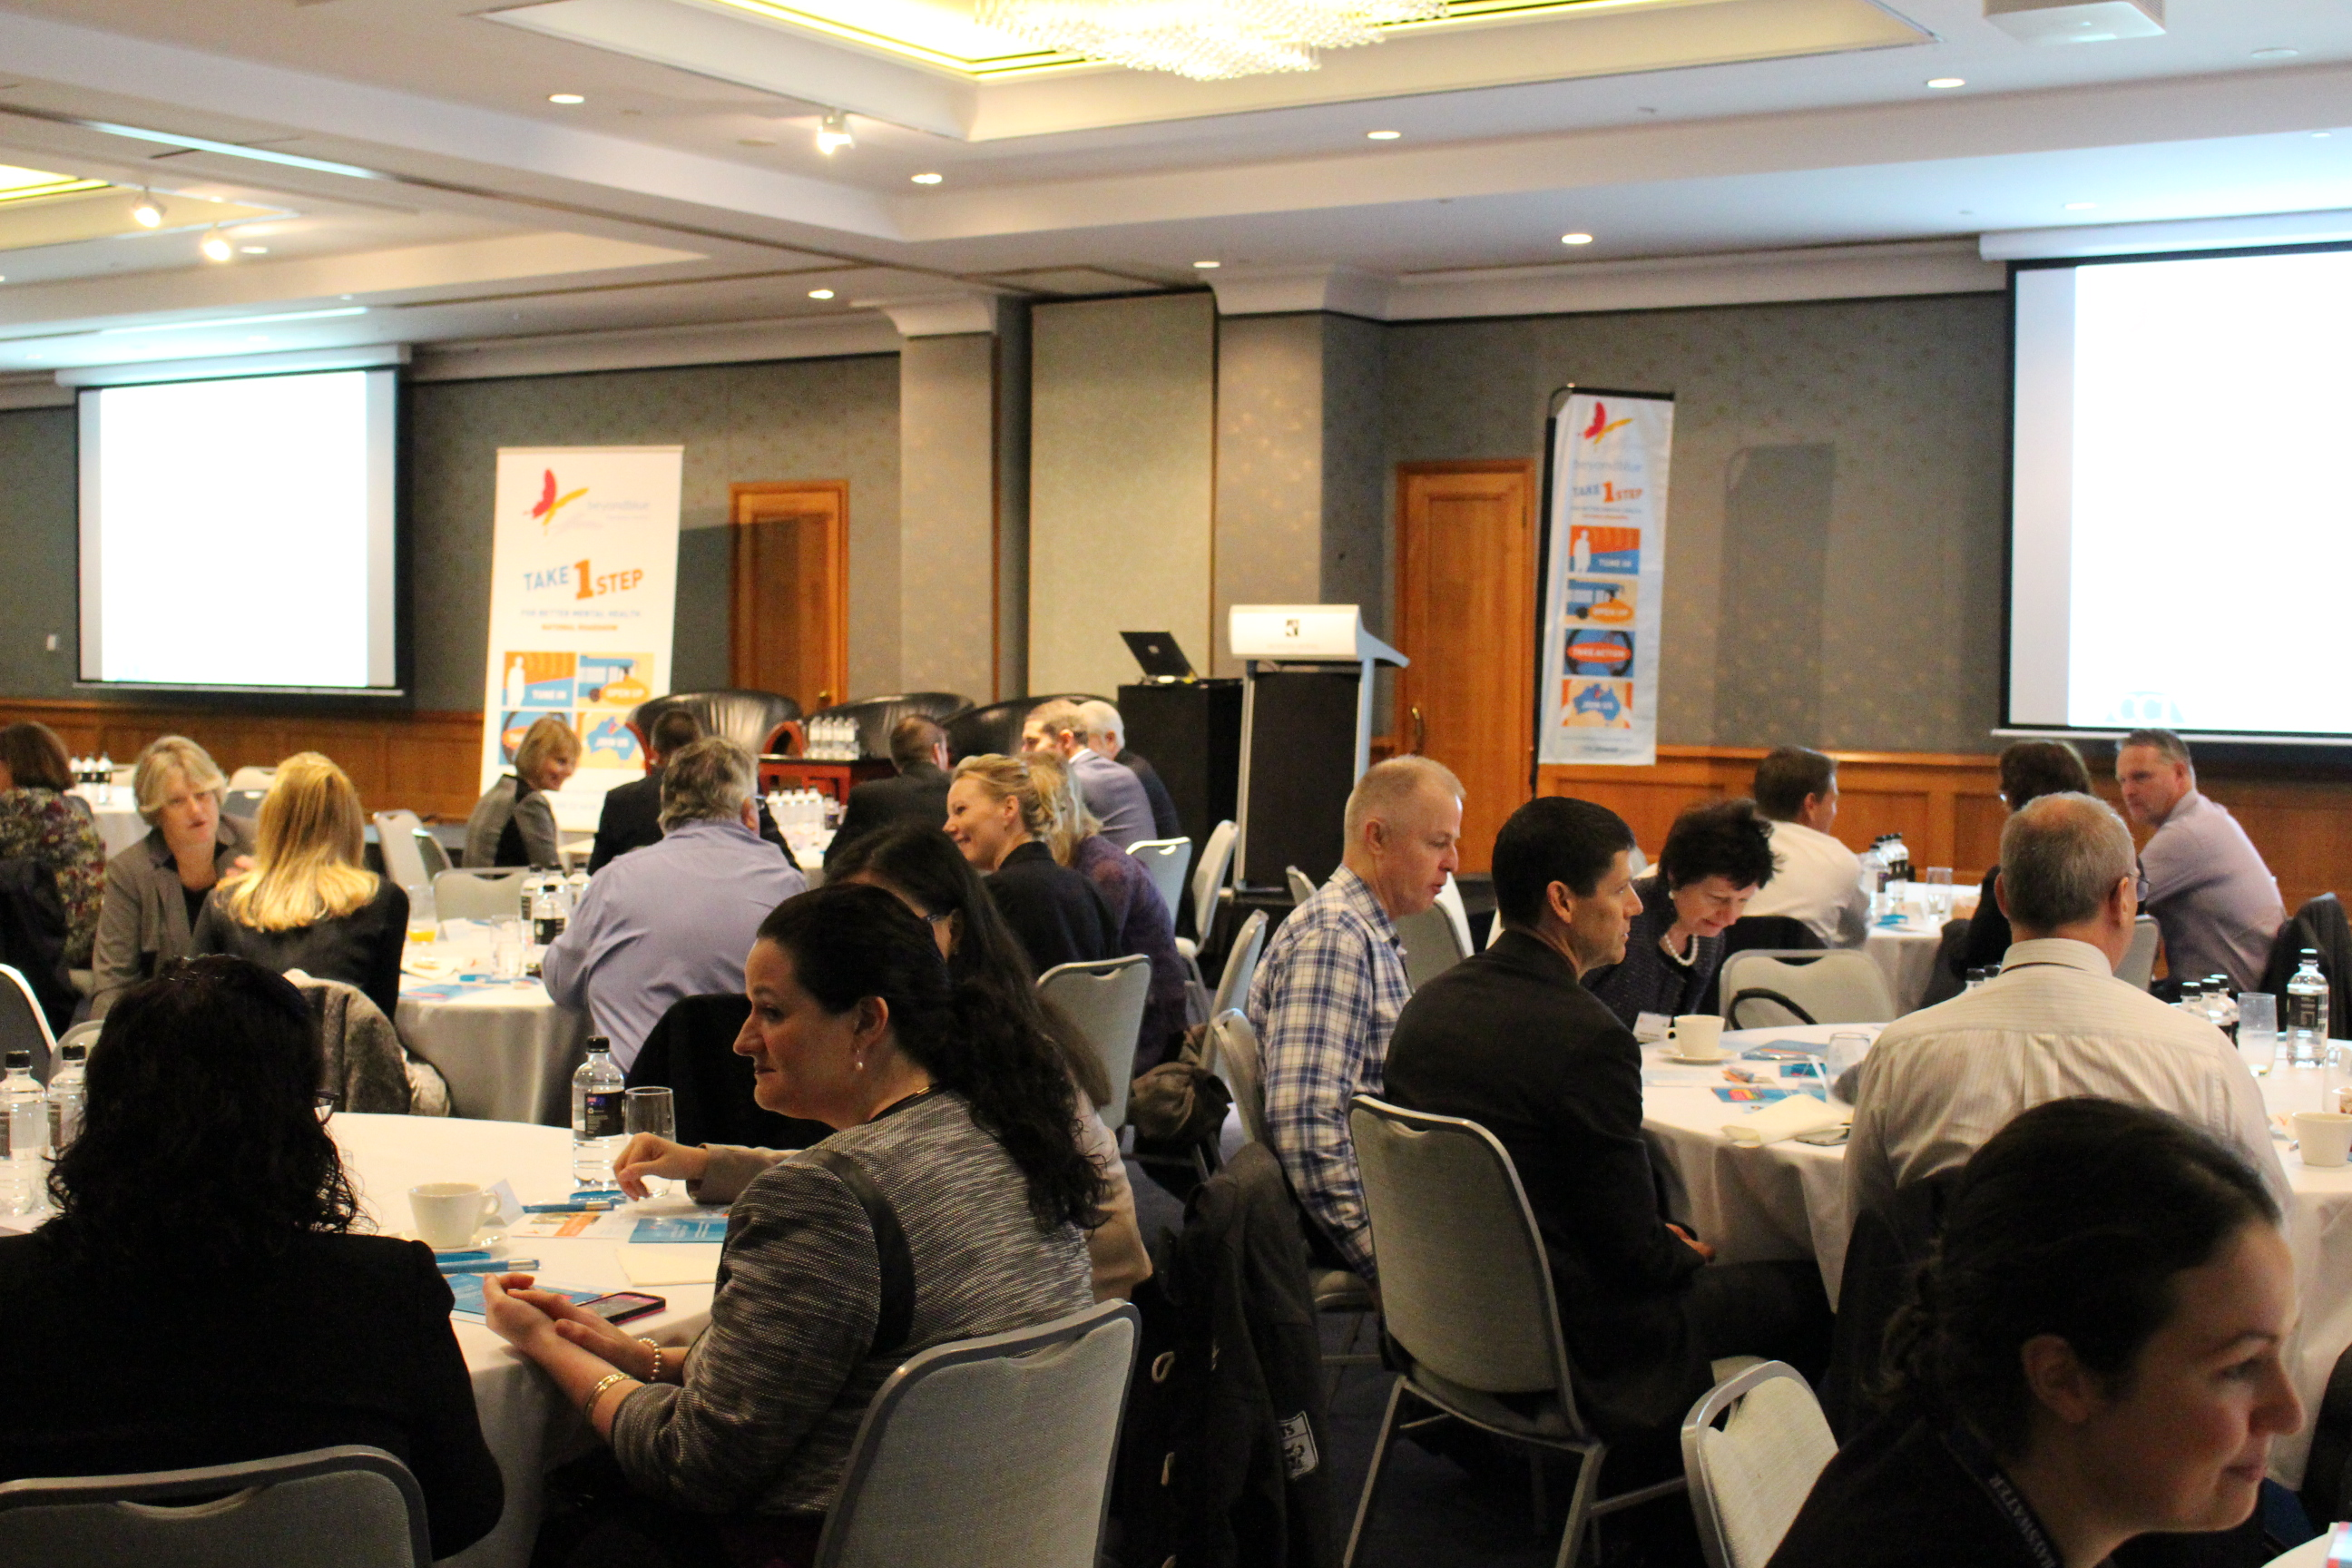 Business leaders 'Take 1 step' at the workplace breakfast in Perth.